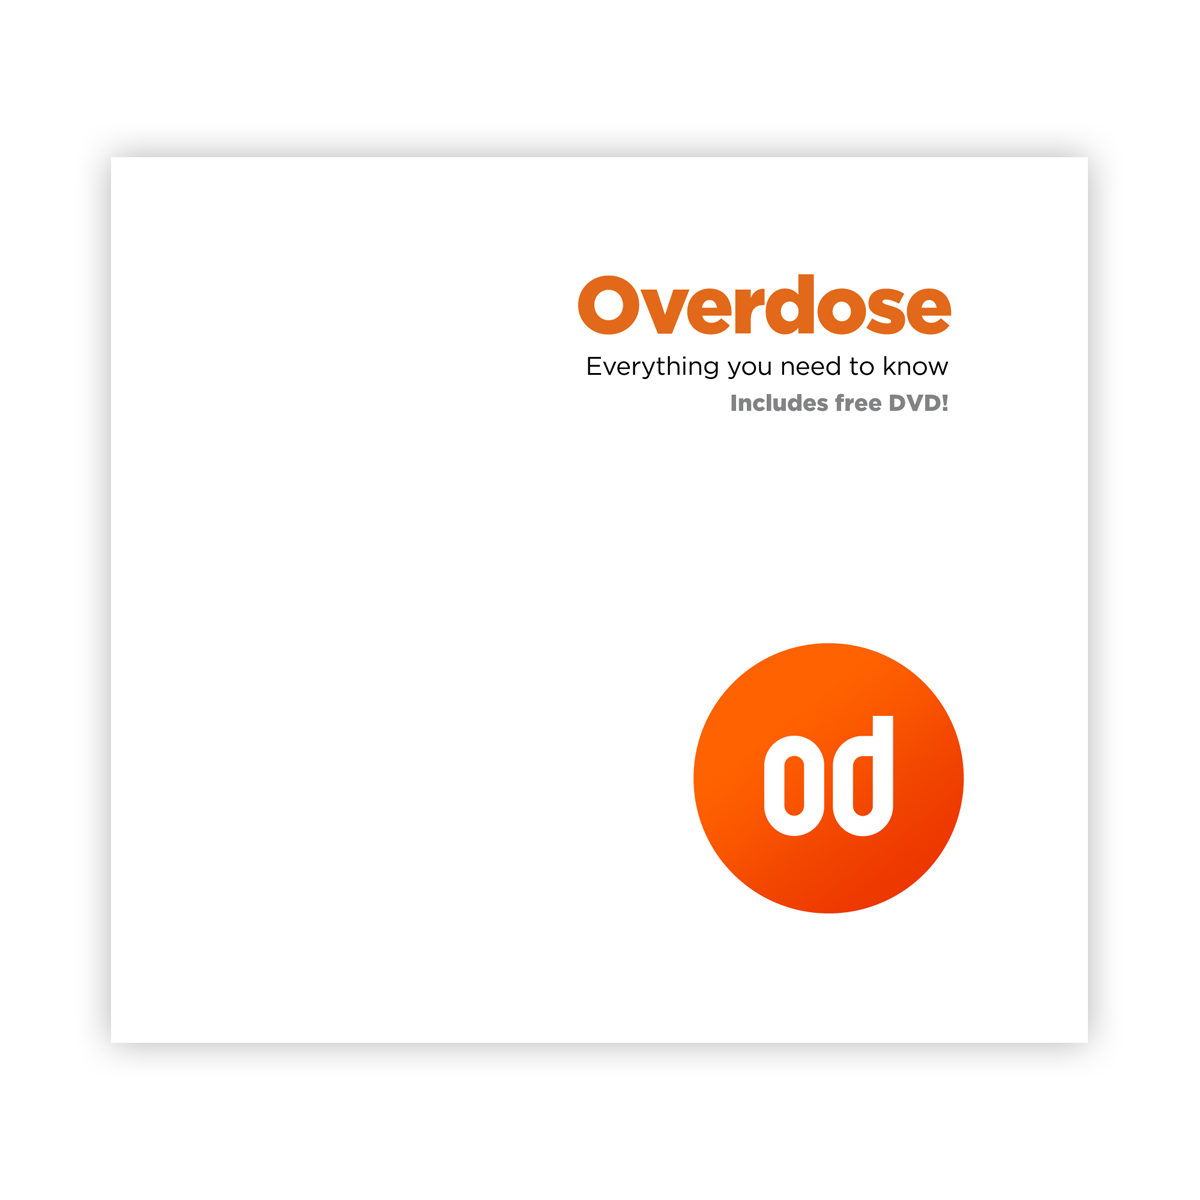 Overdose information: booklet and dvd